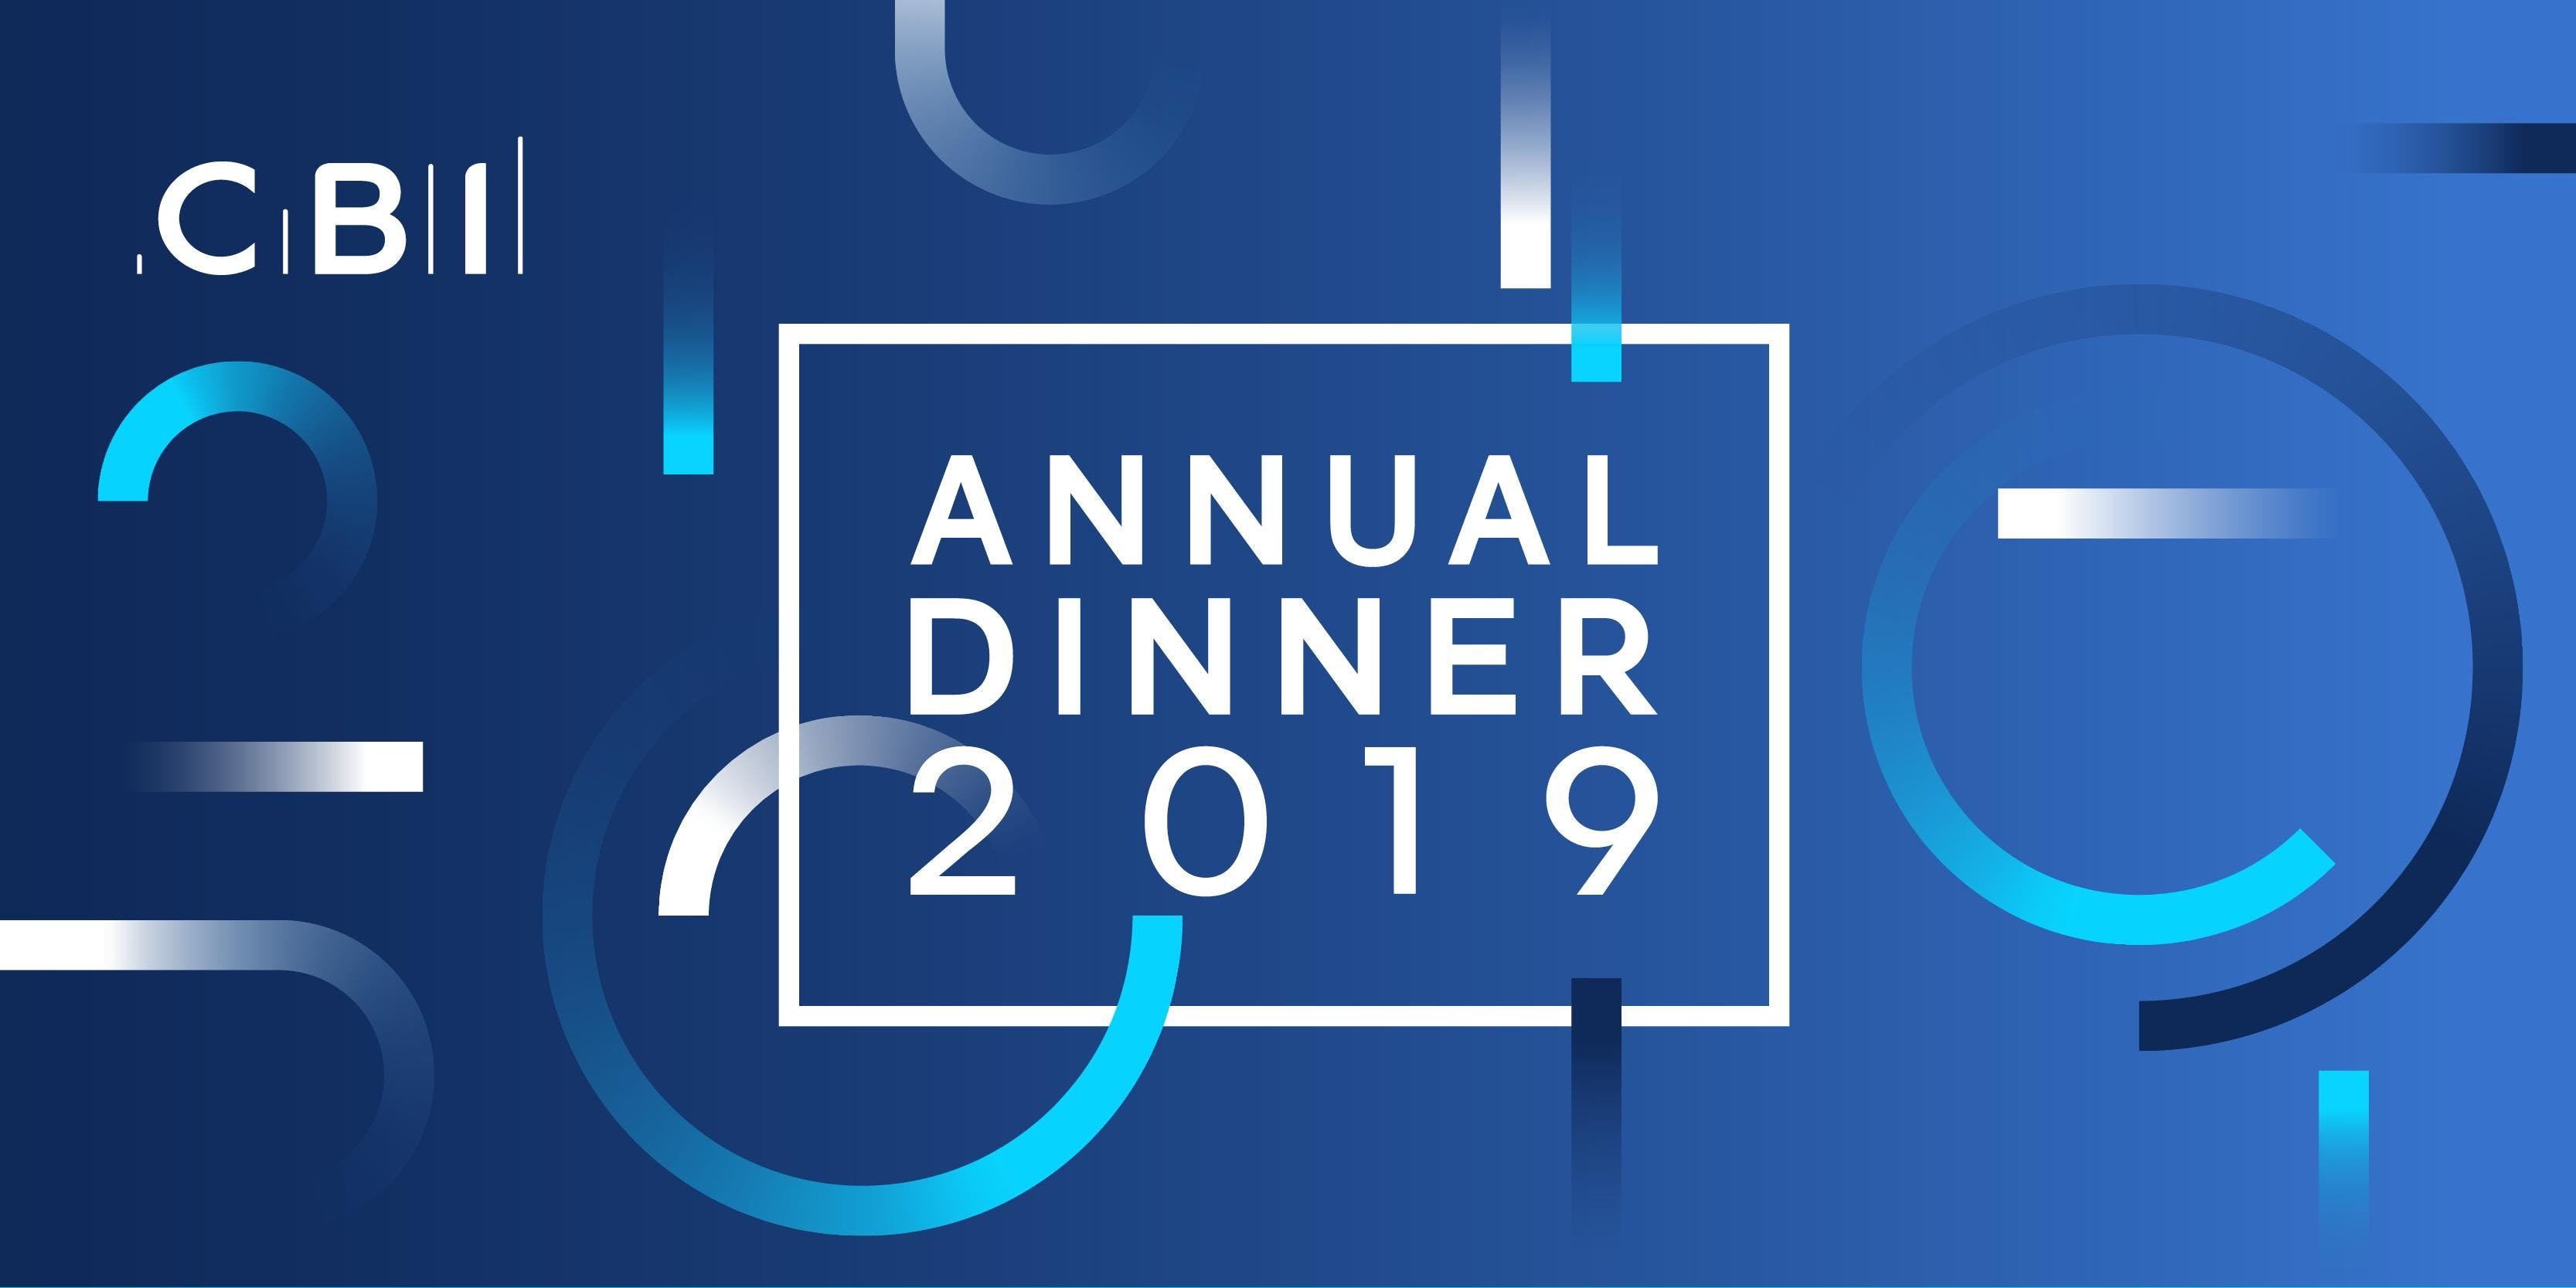 CBI Yorkshire and the Humber Annual Dinner 2019